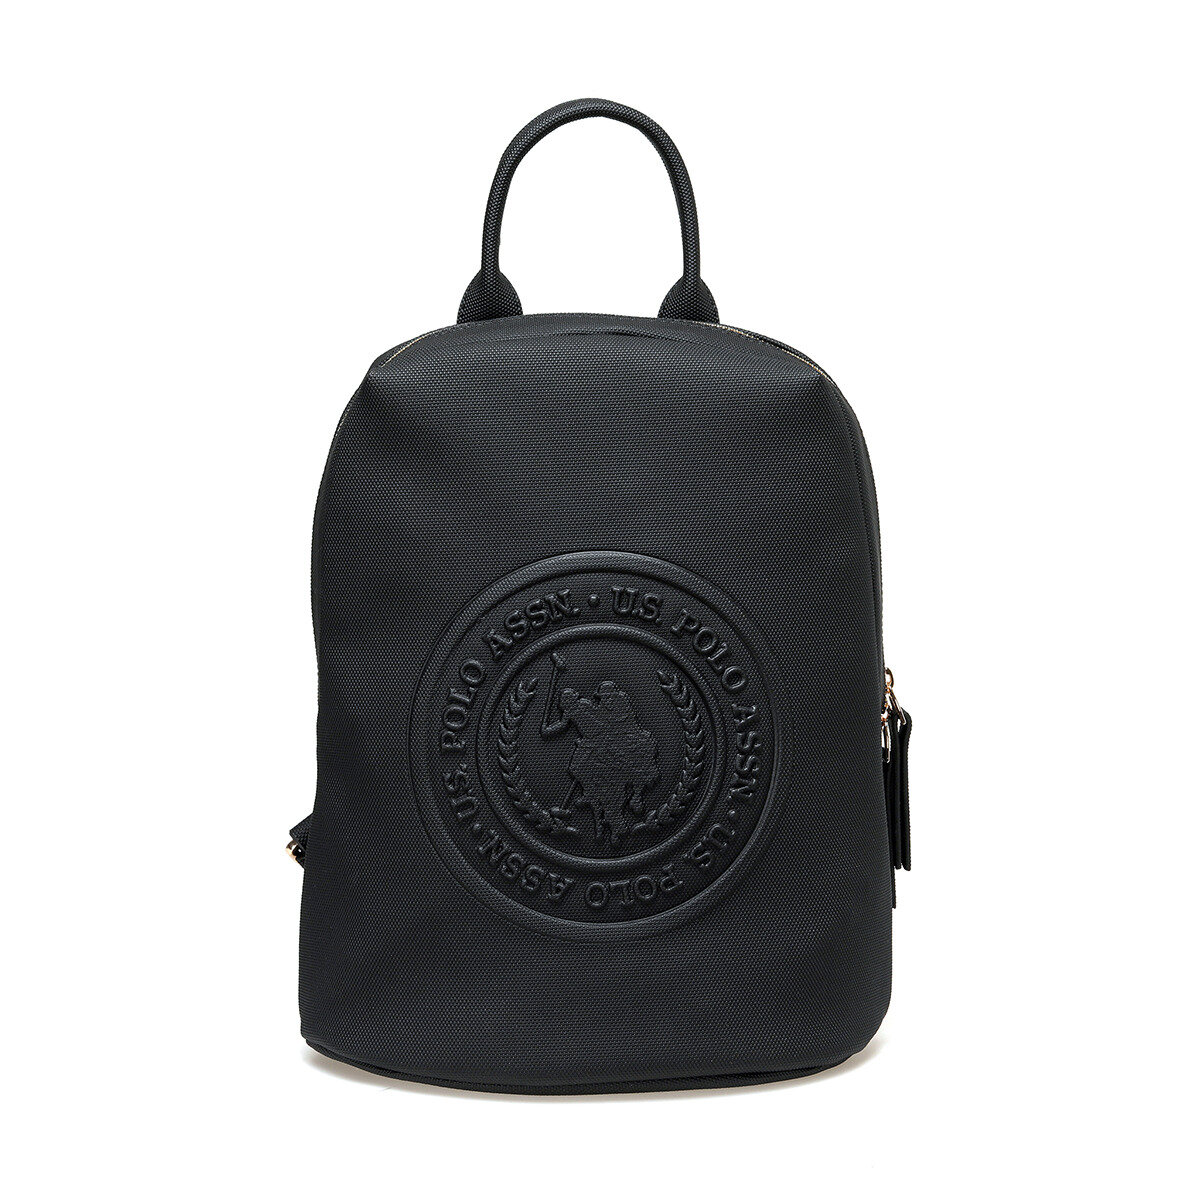 FLO US20321 Black Women 'S Backpack U.S. POLO ASSN.